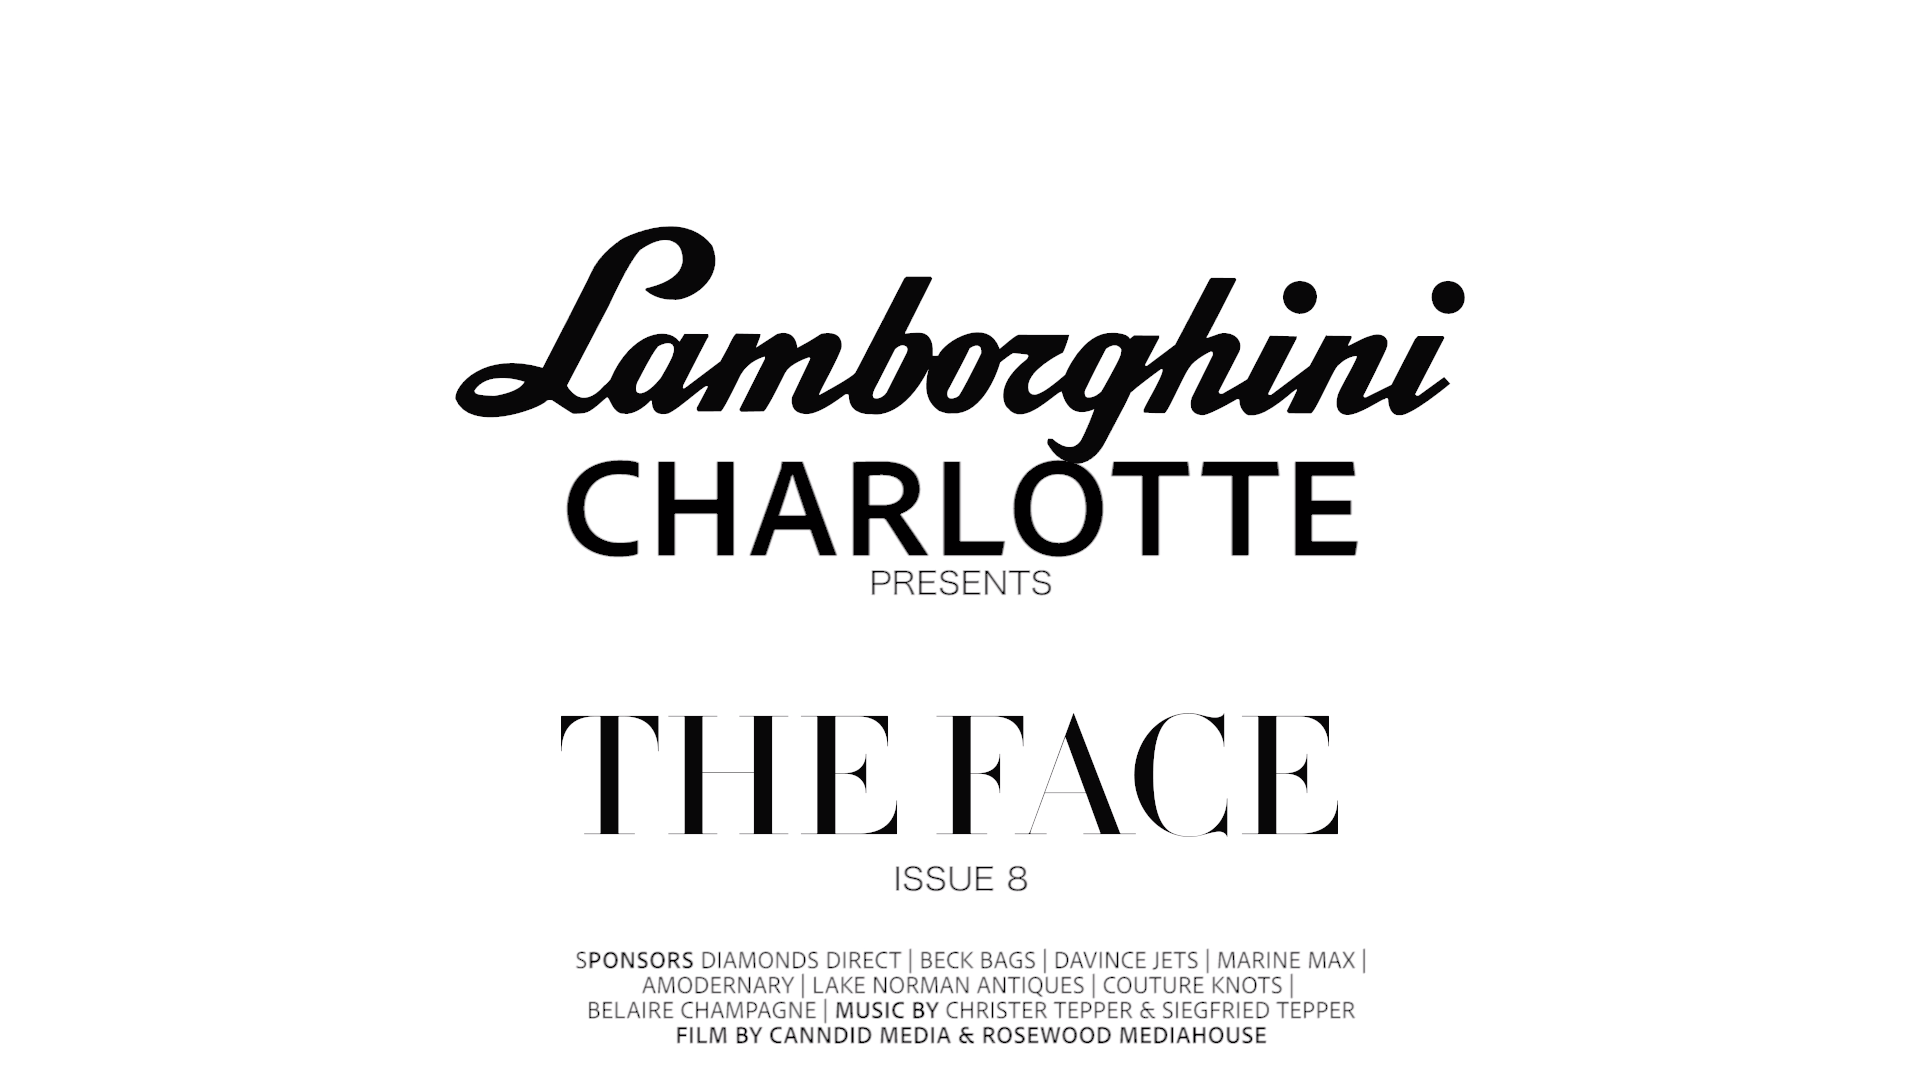 Pin on Lamborghini Charlotte Events 2018